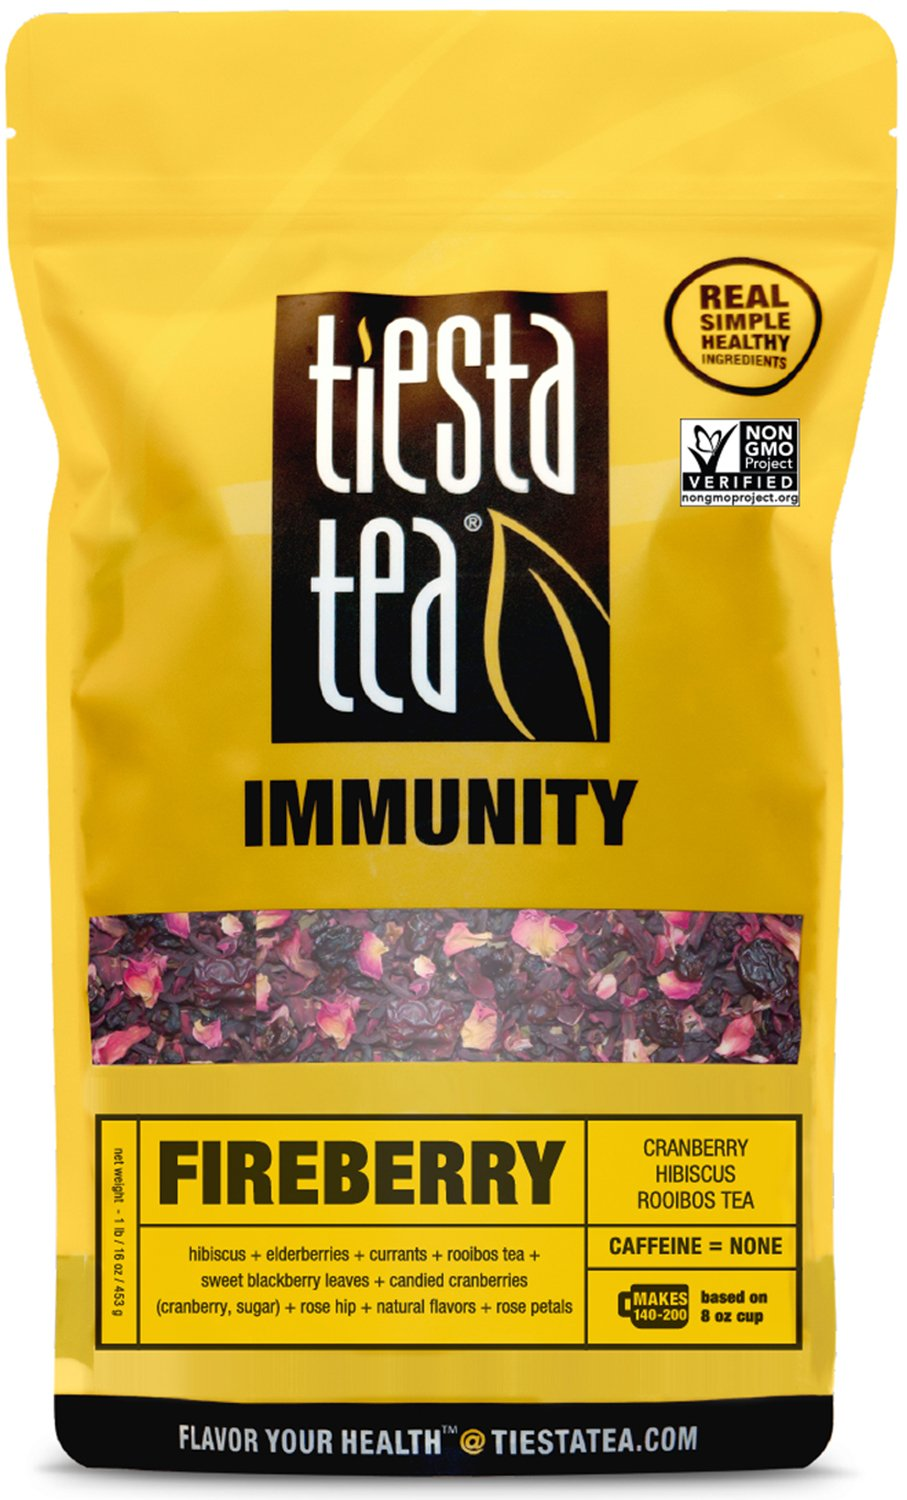 Cranberry Hibiscus Rooibos Tea | FIREBERRY 1 Lb Bag by TIESTA TEA | Caffeine Free | Loose Leaf Herbal Tea Immunity Blend | Non-GMO